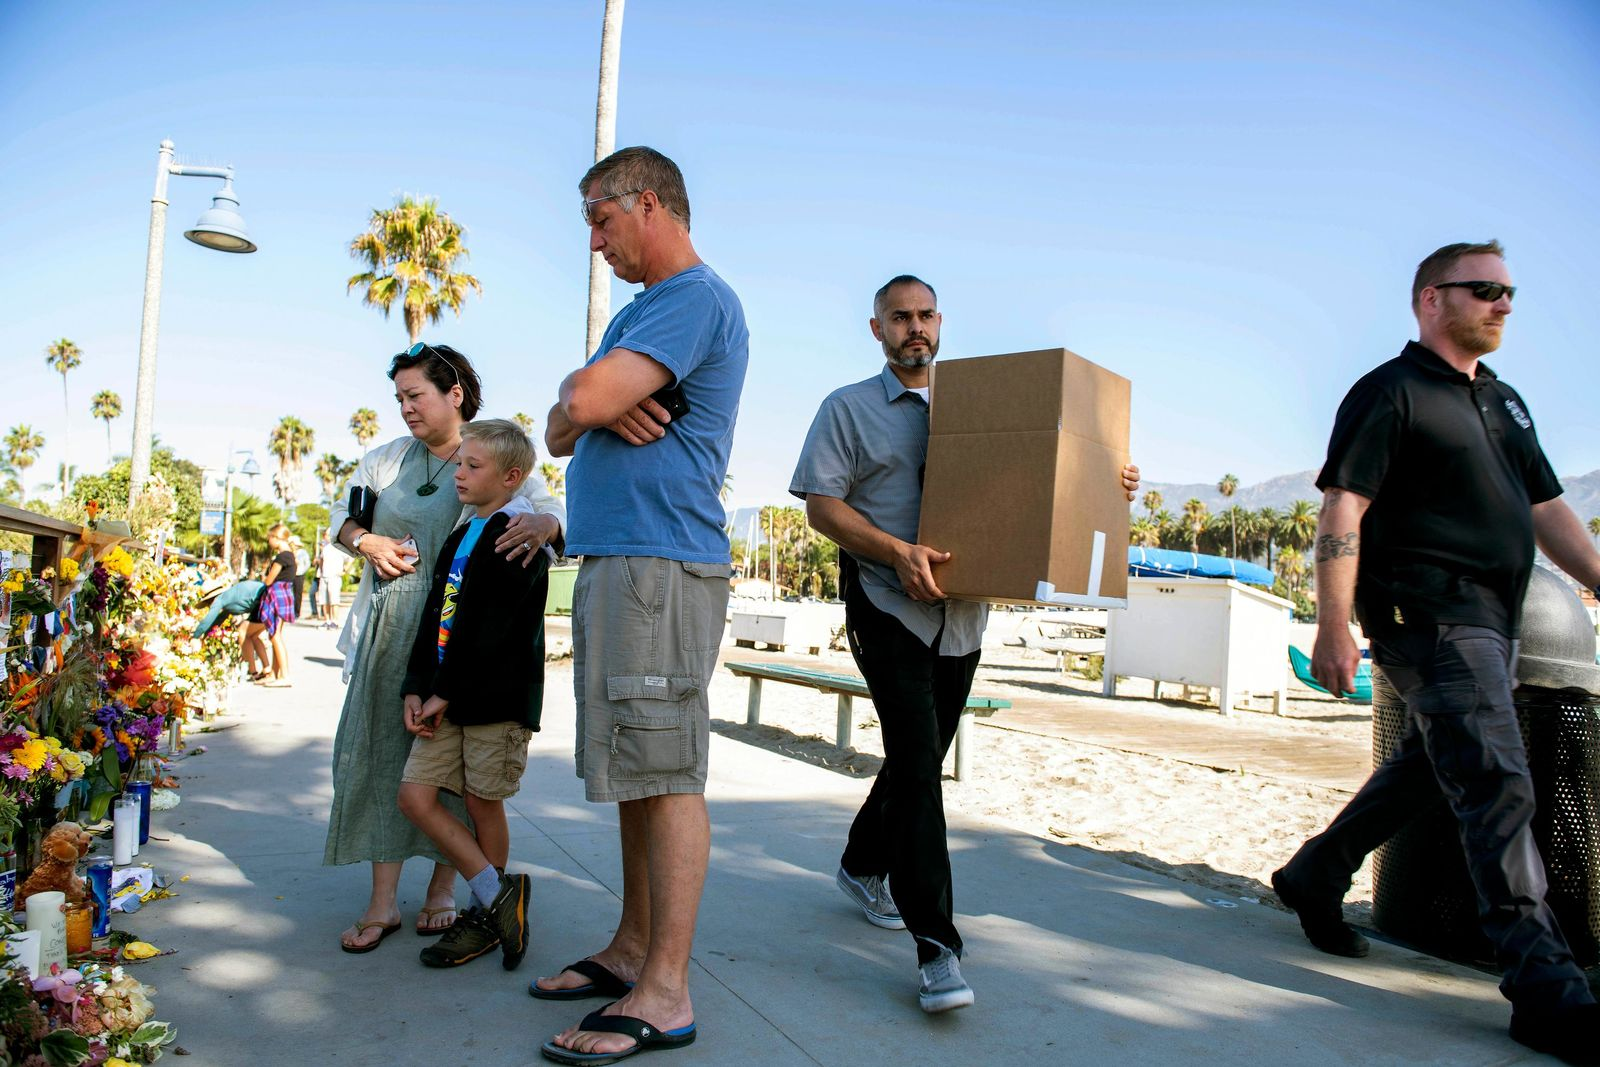 People gather around a memorial for the victims of the Conception dive boat fire, as authorities carry out boxes after a search at the Truth Aquatics' offices, the California company that owned the scuba diving boat that caught fire and killed dozens of people last week, on the Santa Barbara Harbor in Santa Barbara, Calif., Sunday, Sept. 8, 2019. . (AP Photo/ Christian Monterrosa)